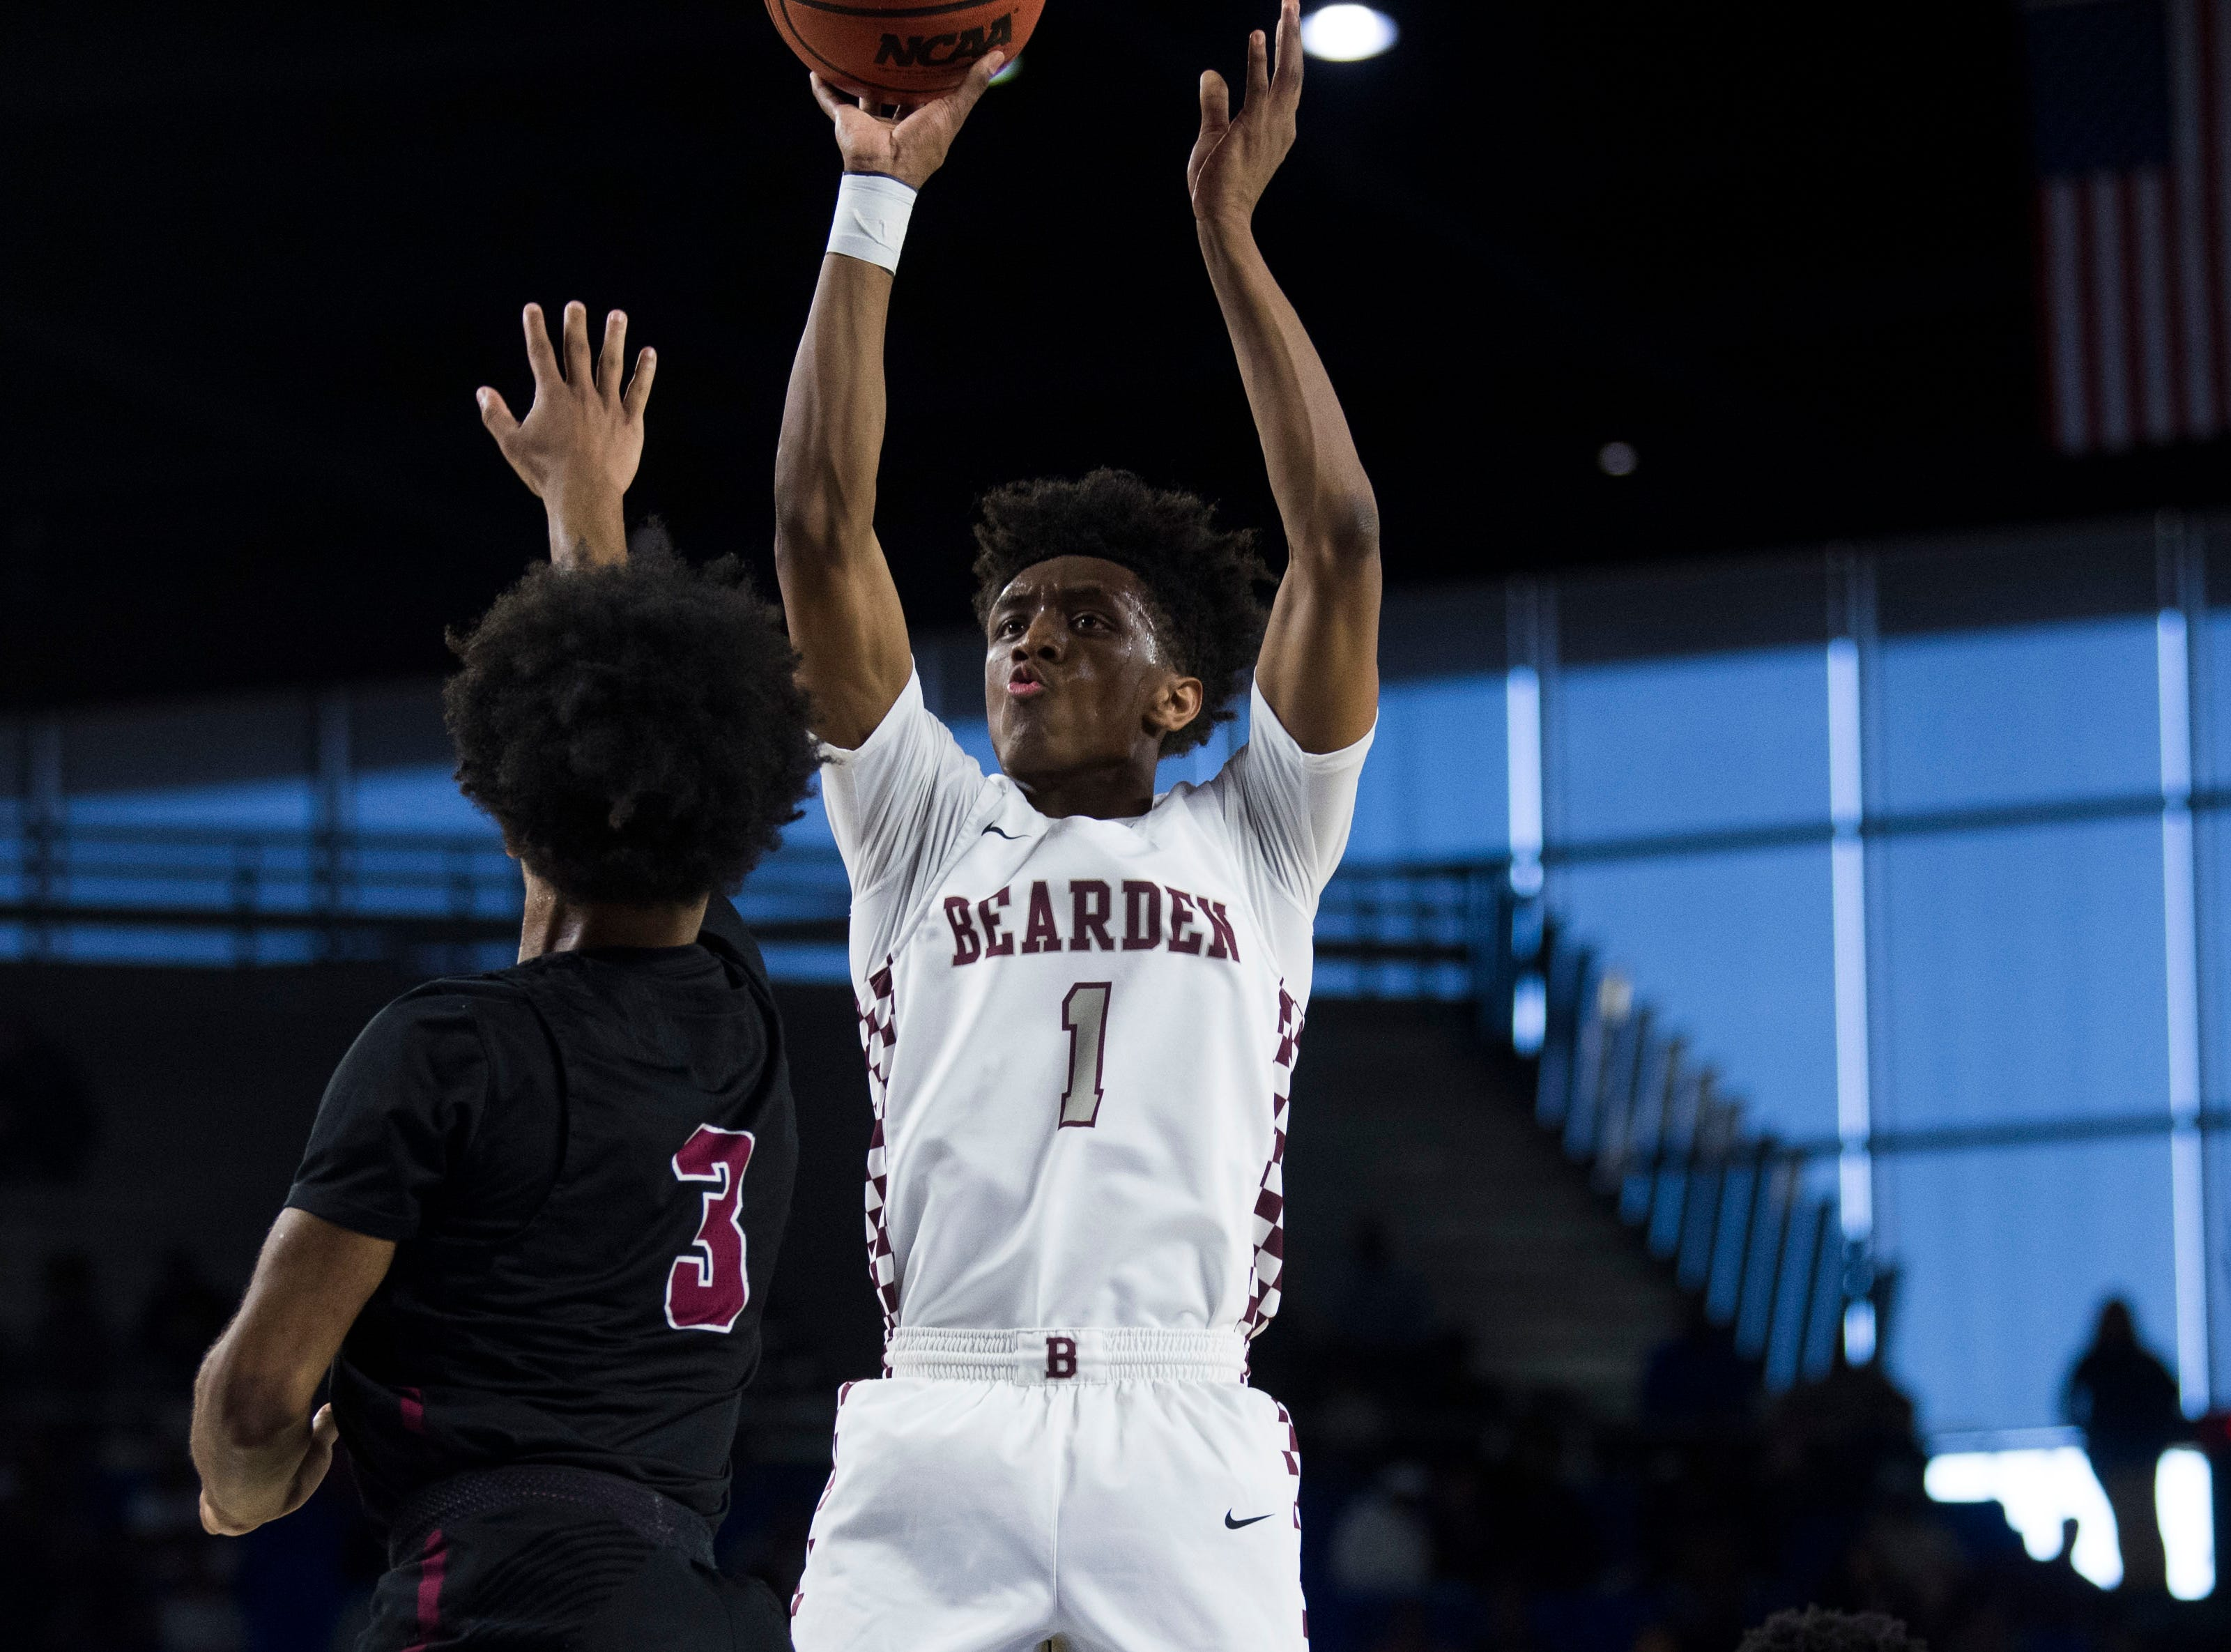 Bearden's Trent Stephney (1) takes a shot during a TSSAA AAA state championship game between Bearden and Memphis East at the Murphy Center in Murfreesboro, Saturday, March 16, 2019.